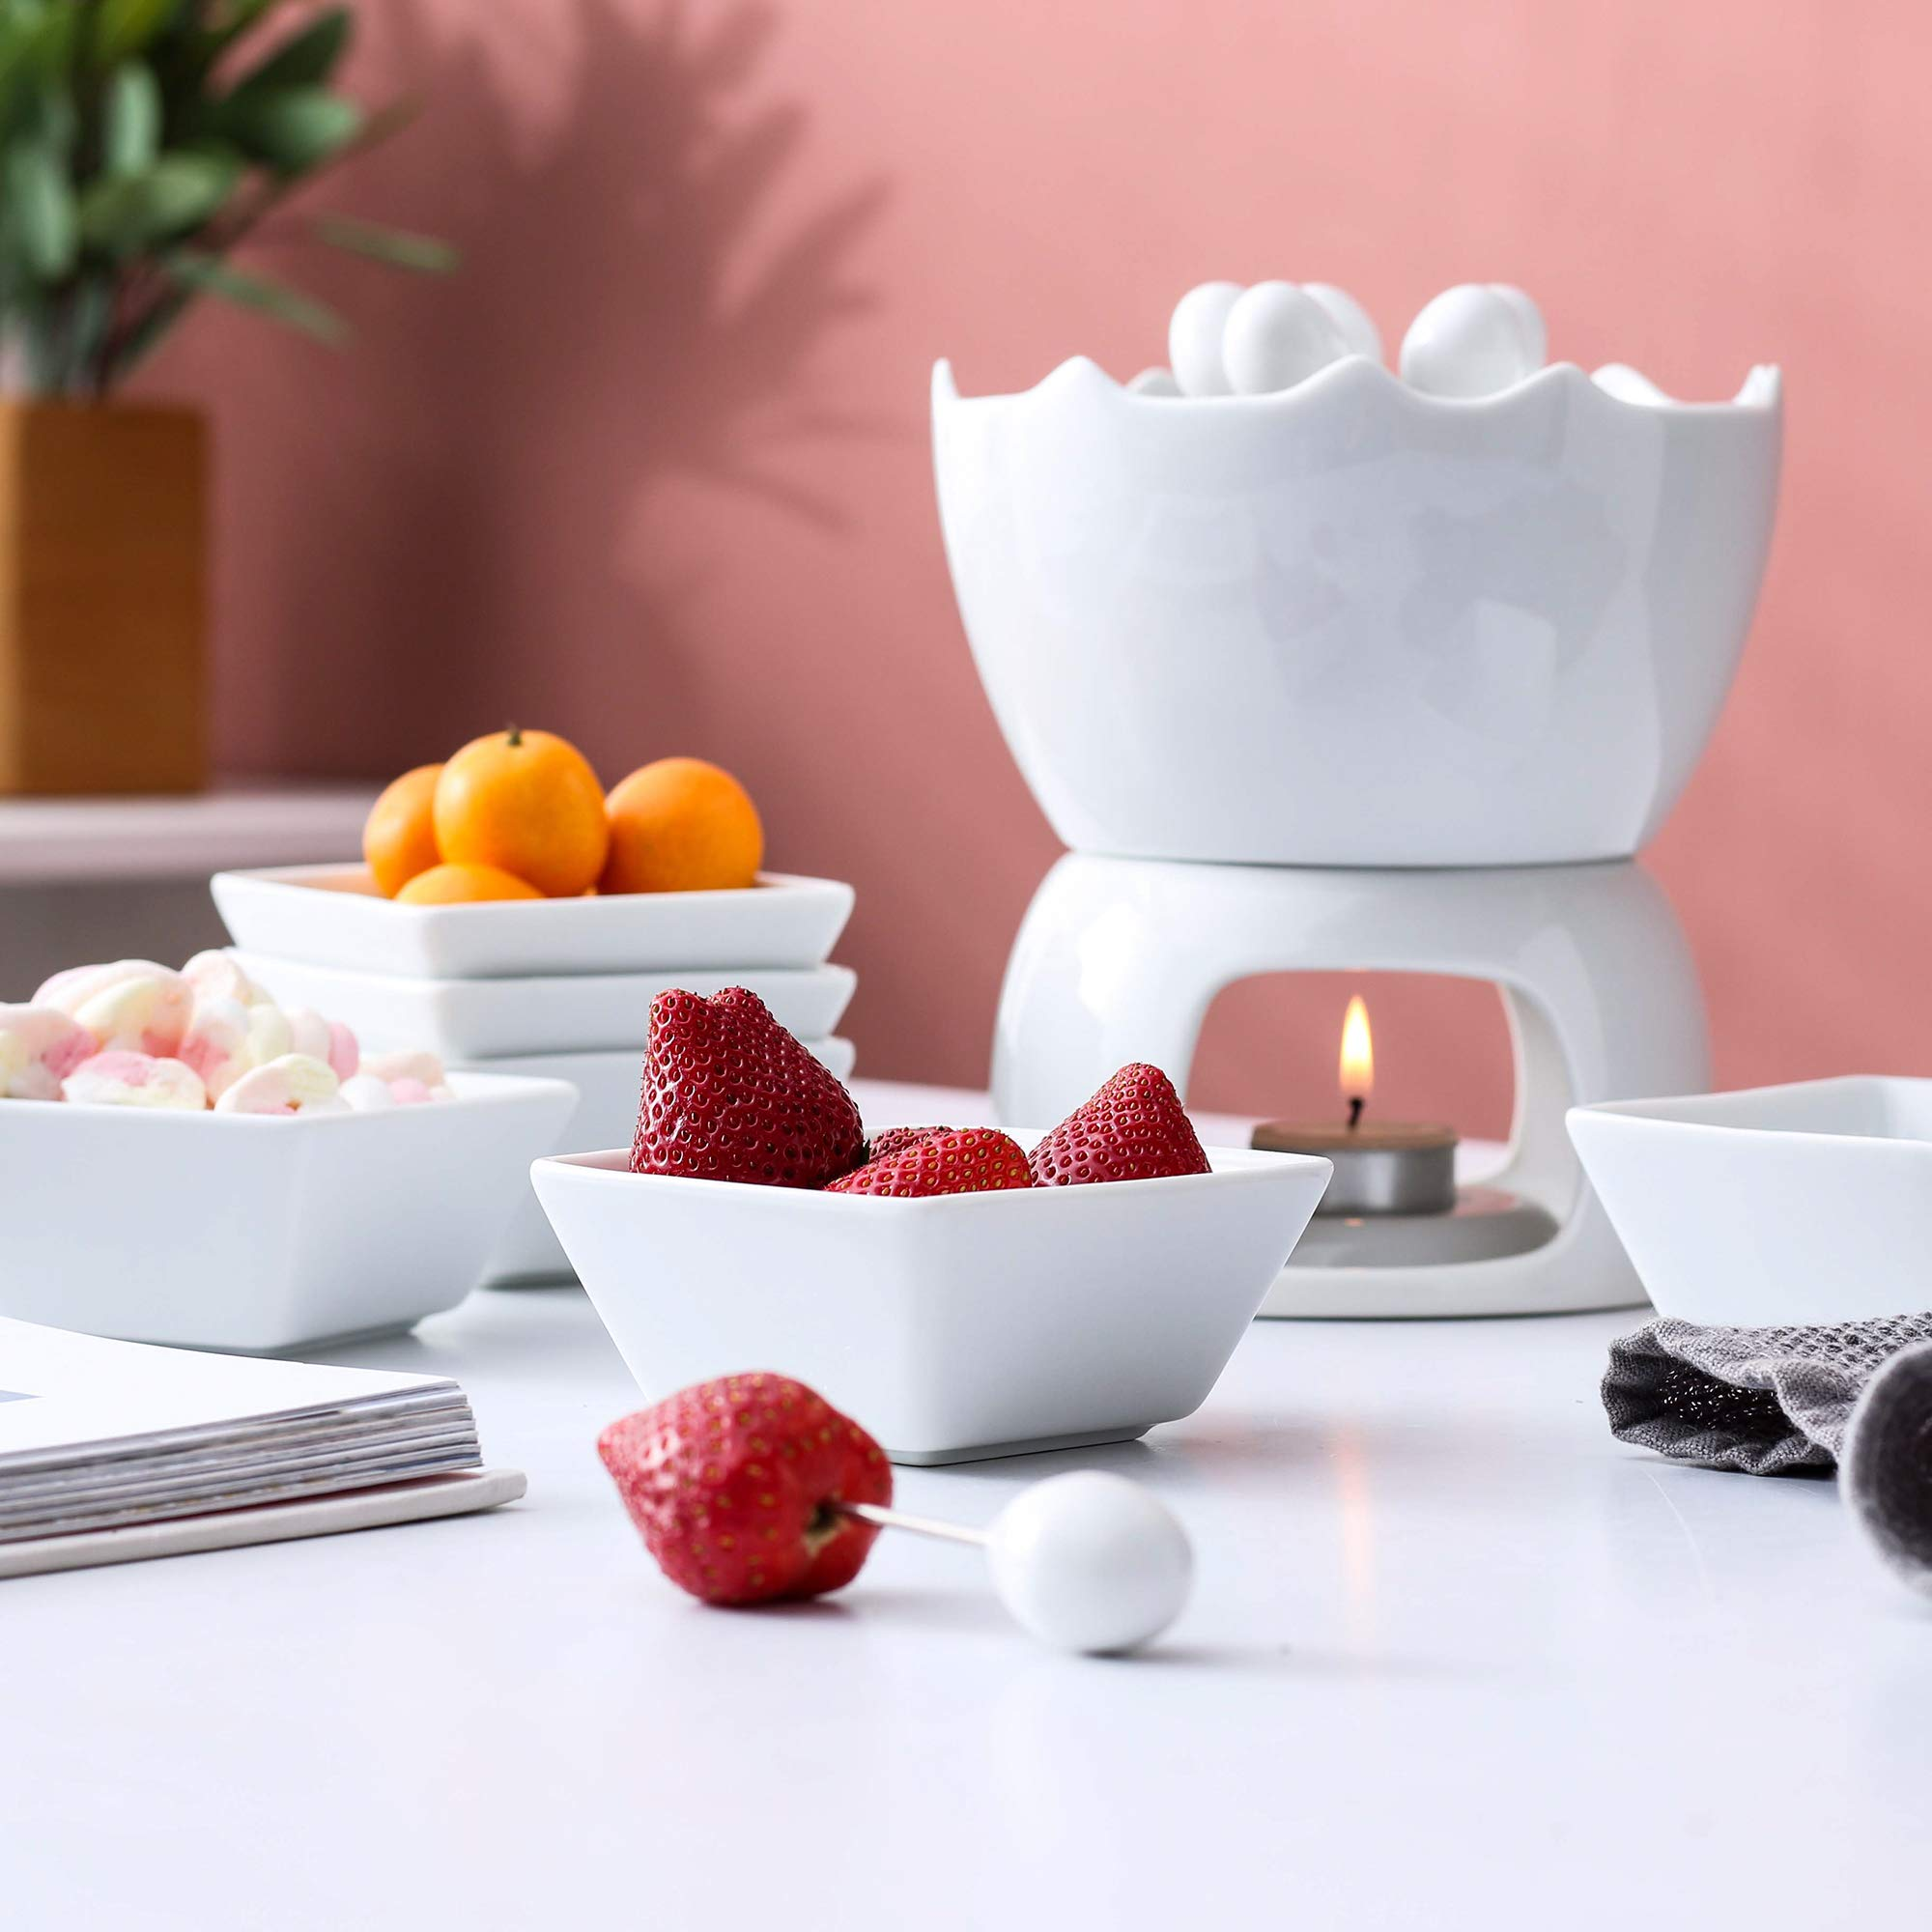 Malacasa Fondue Pot Set Two-layer Porcelain Tealight Chocolate Fondue with Dipping Bowls and Forks for 6, Cheese Fondue or Butter Fondue Set, White by Malacasa (Image #3)